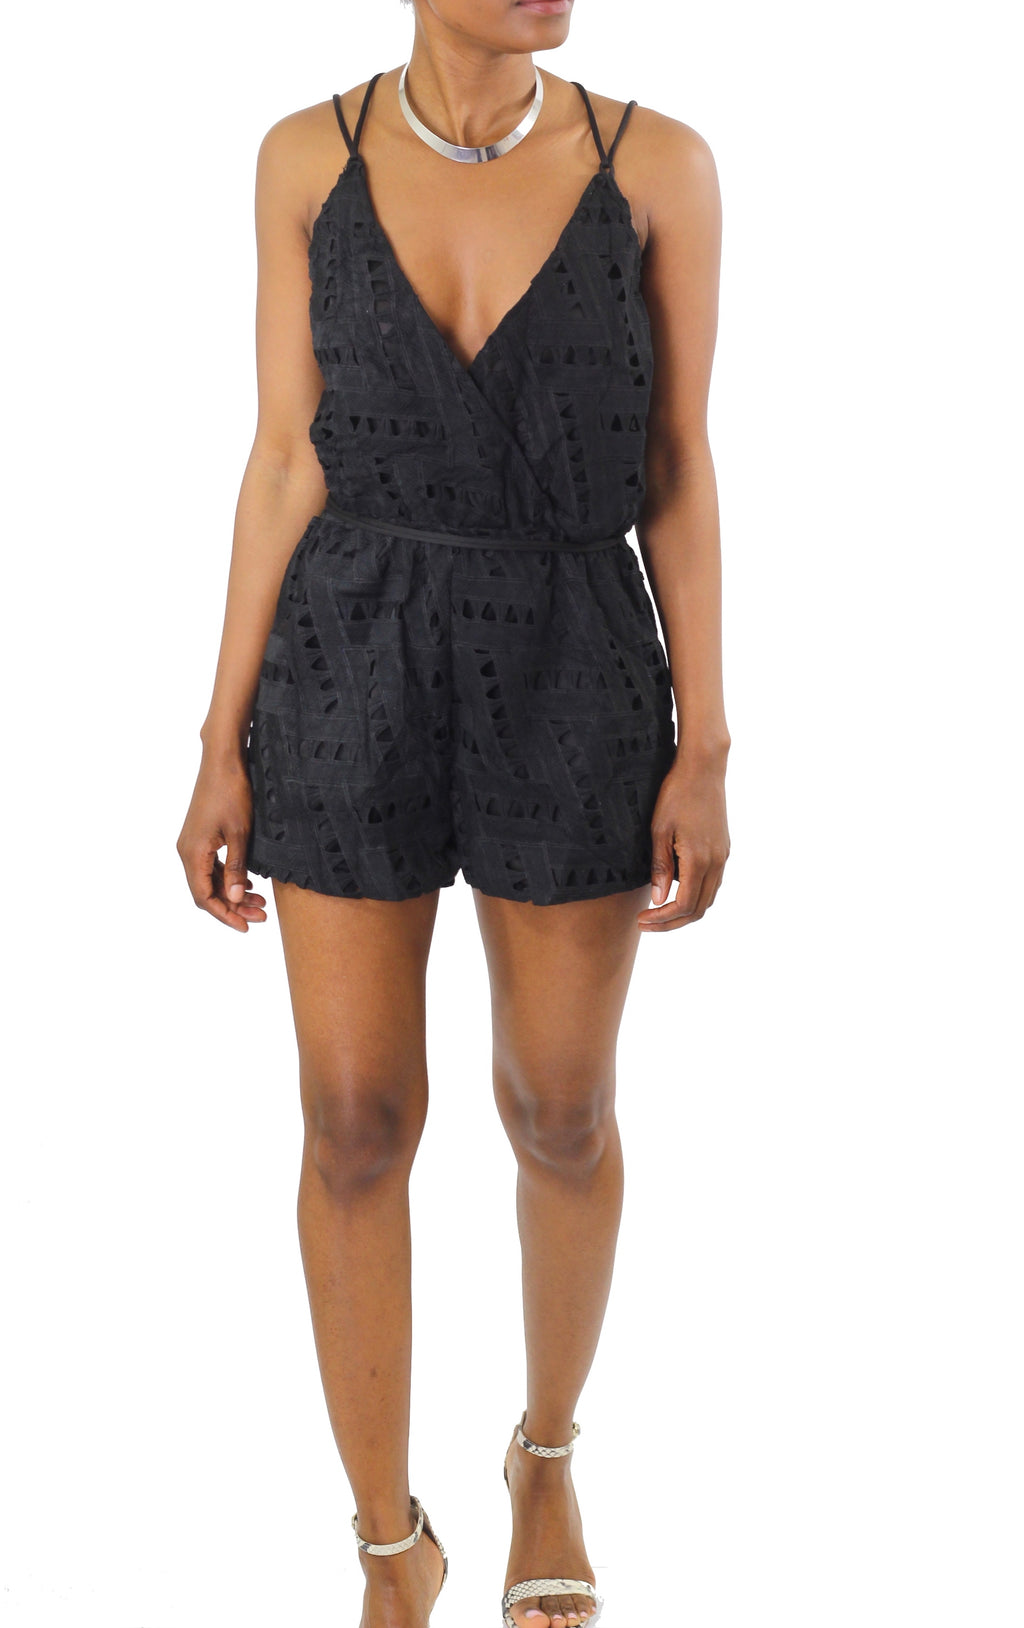 Strappy Open Back Eyelet Playsuit - Cultur'd Collective